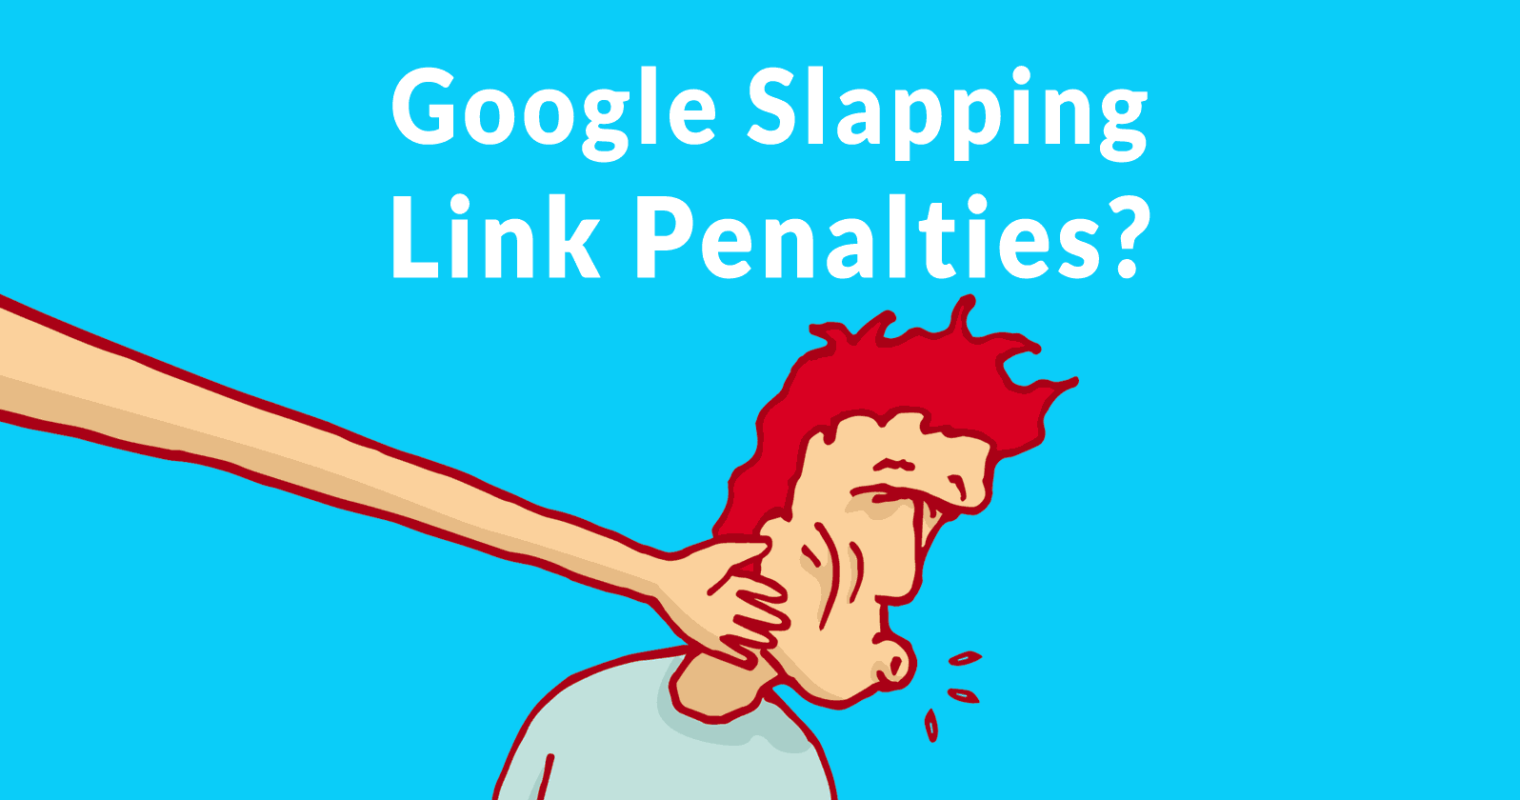 Doesn't Build Links. Why Did Google Slap a Link Penalty?